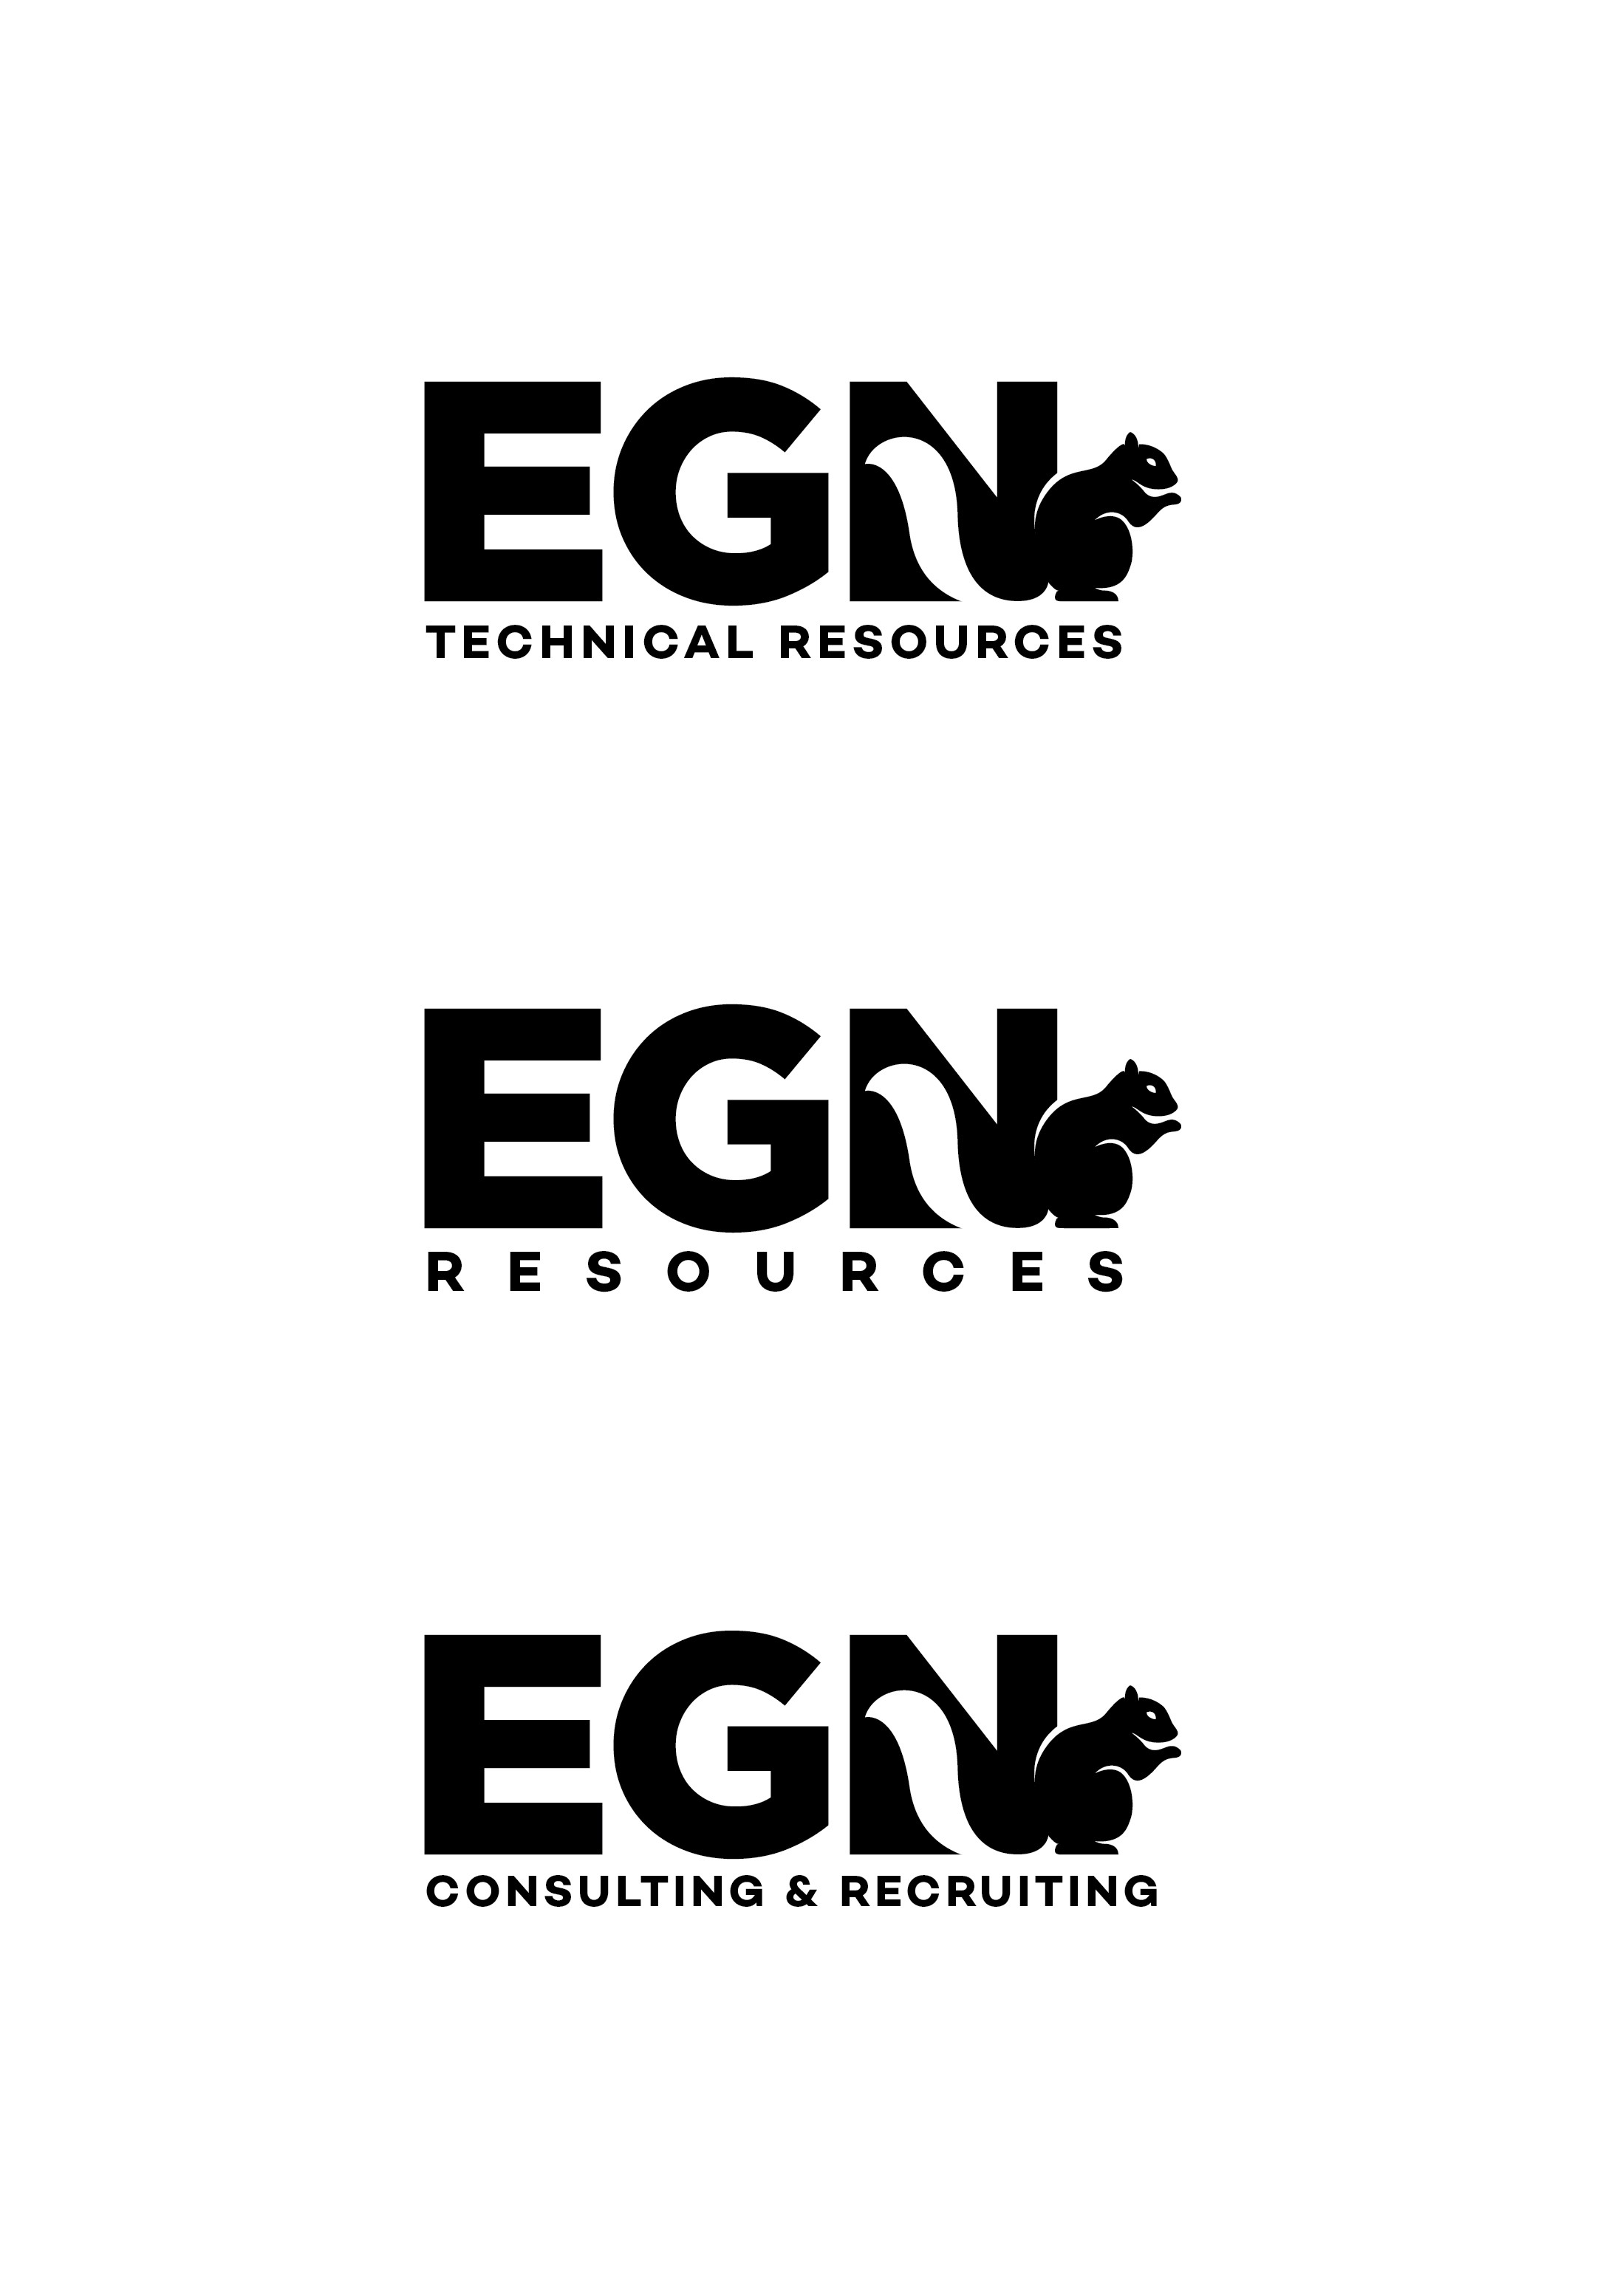 EGN Technical Resources